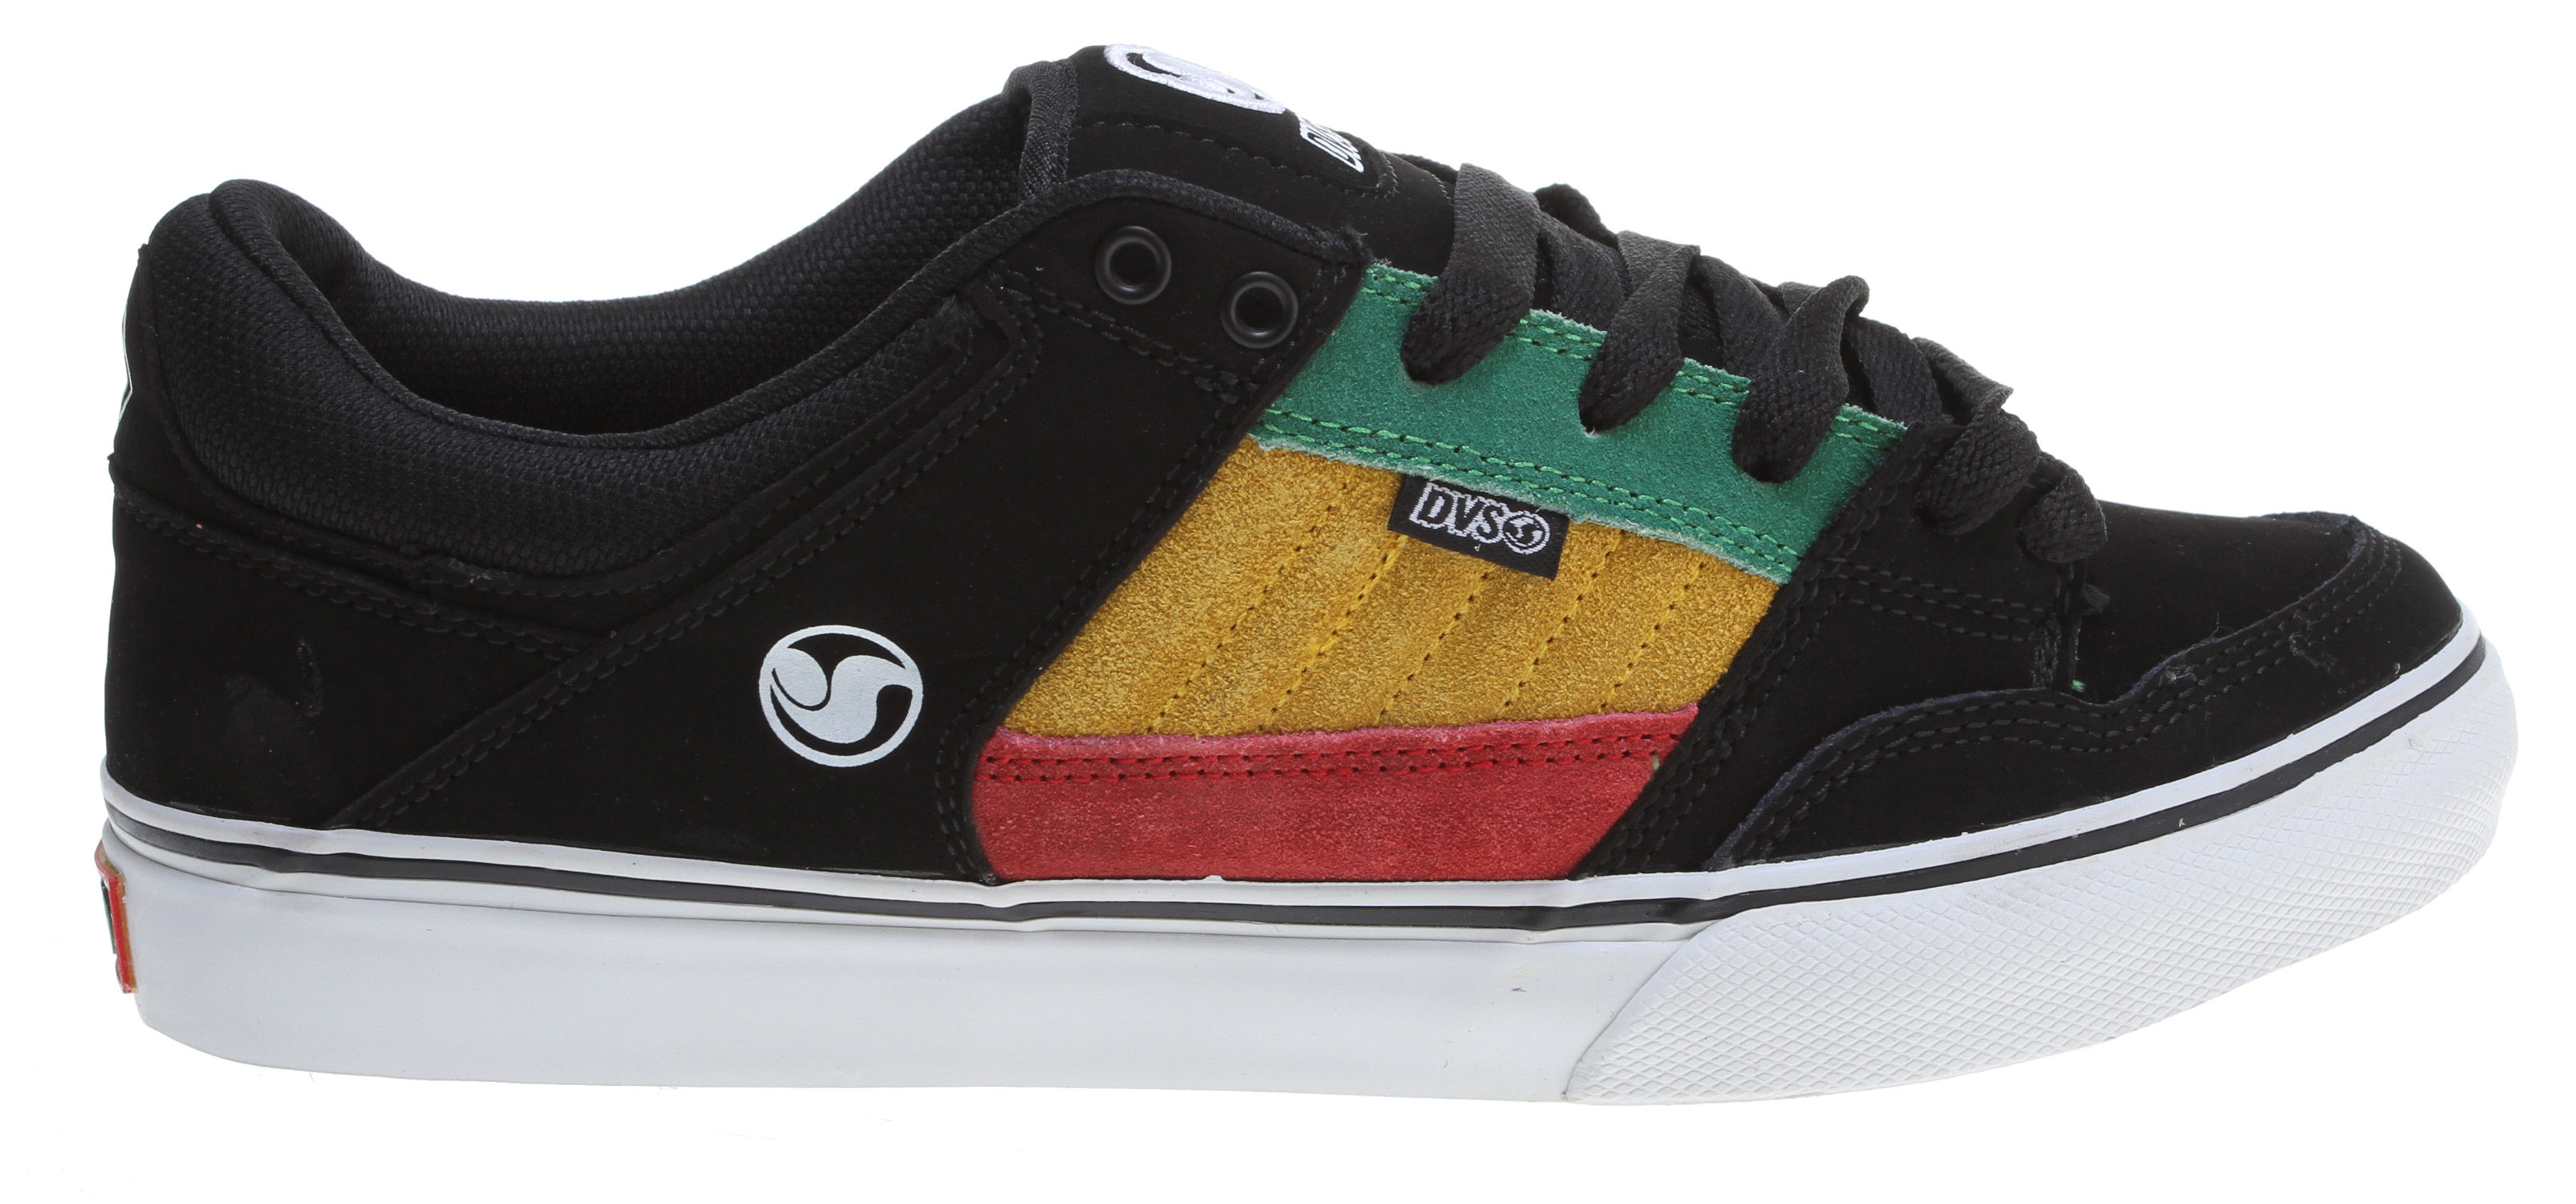 Skateboard Key Features of the DVS Ignition CT Skate Shoes: Leather/Nubuck/Suede Upper Material Reinforced Ollie Area For Durability Extra Padding For Comfort Open-Cel Lbreathable Mesh Tongue Highly Flexible Lasting Board Non-Slip Vulcanized Outsole - $34.95